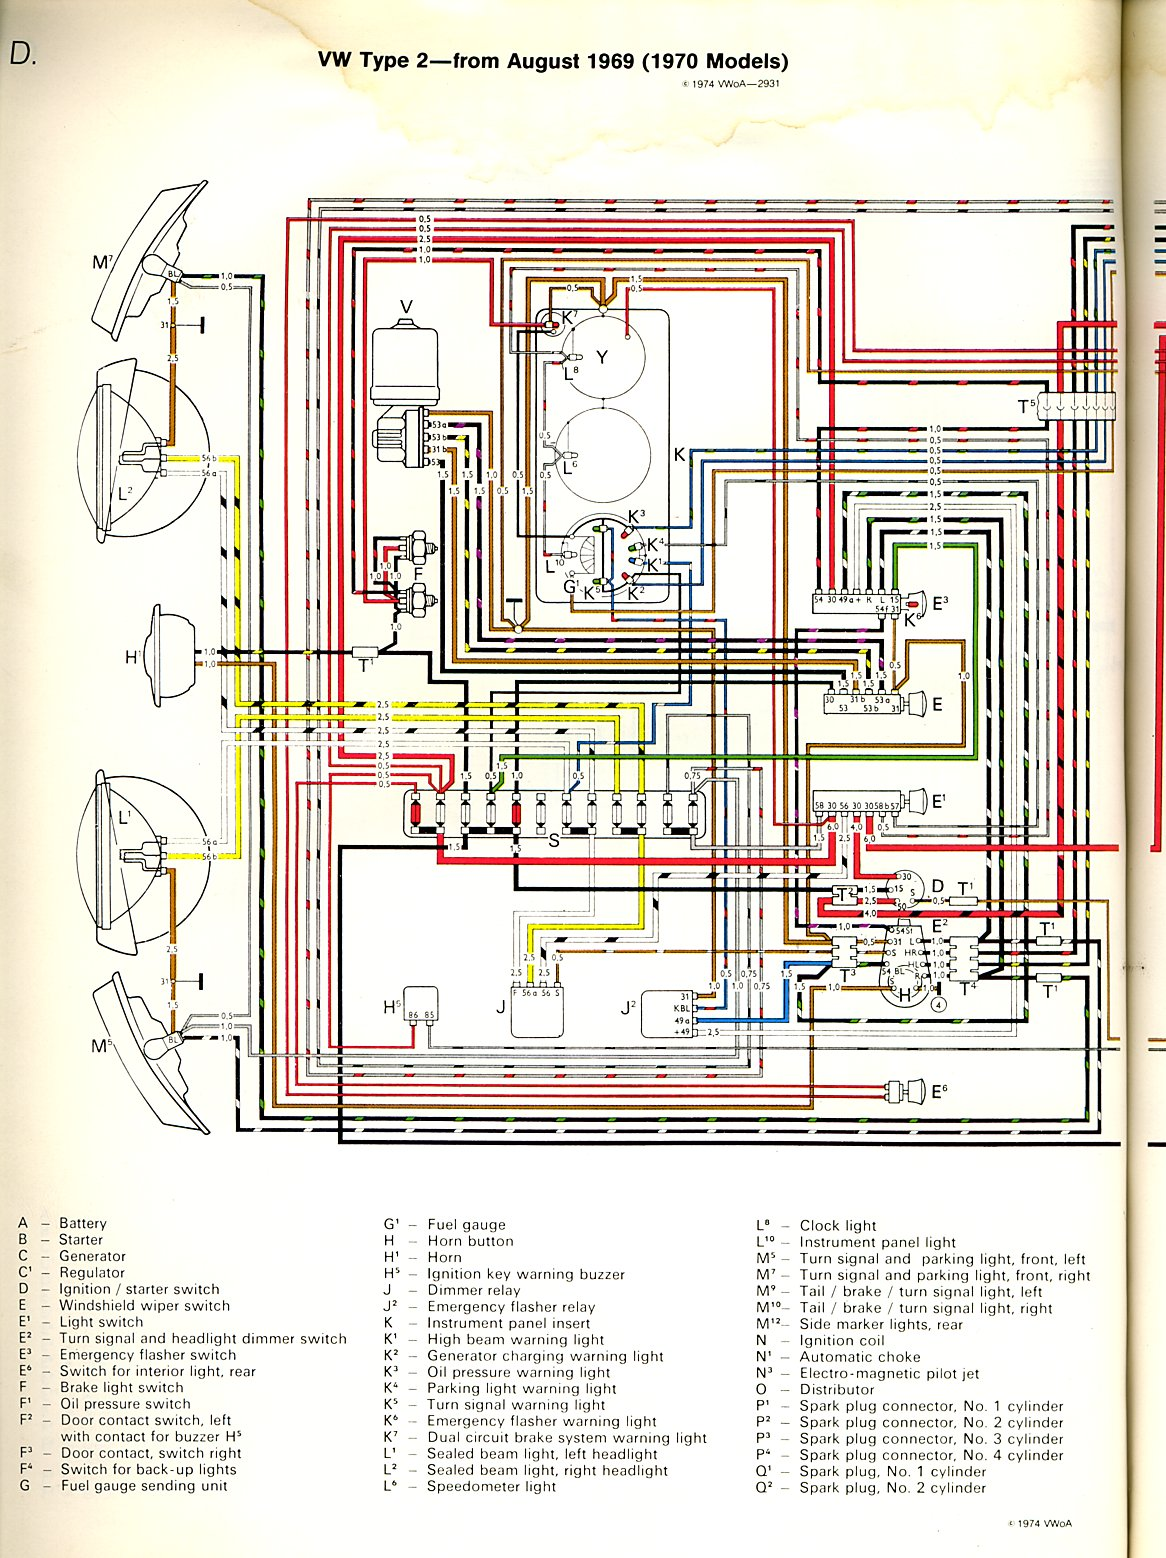 baybus_70a thesamba com type 2 wiring diagrams  at reclaimingppi.co